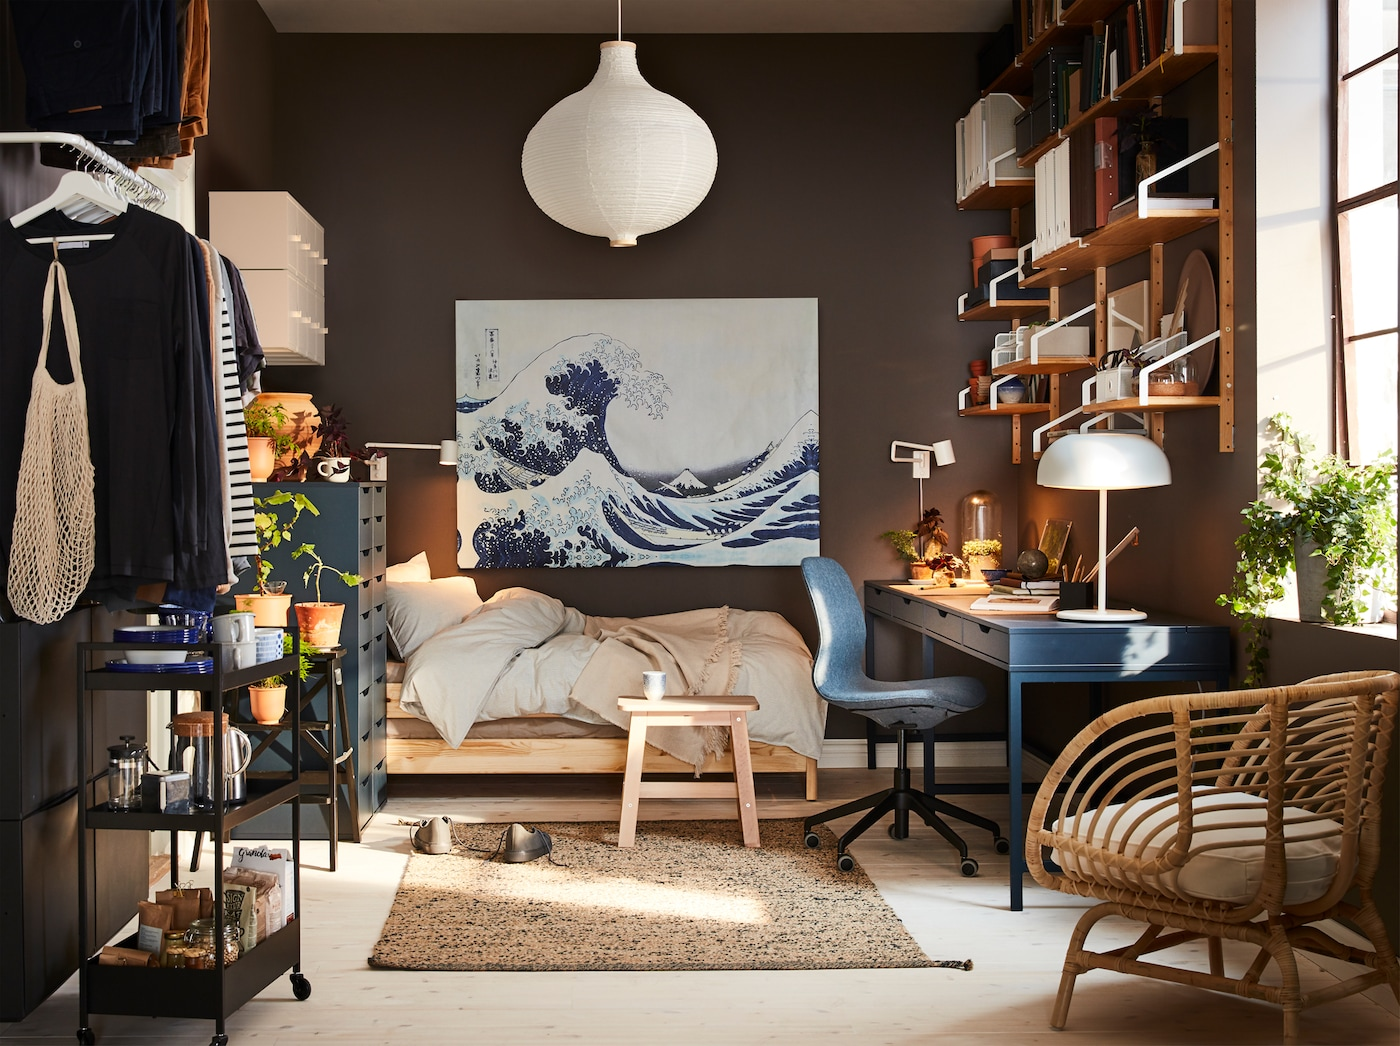 A small home with a dark blue desk, a rattan armchair, a white pendant lamp shade and a painting with a big blue wave.